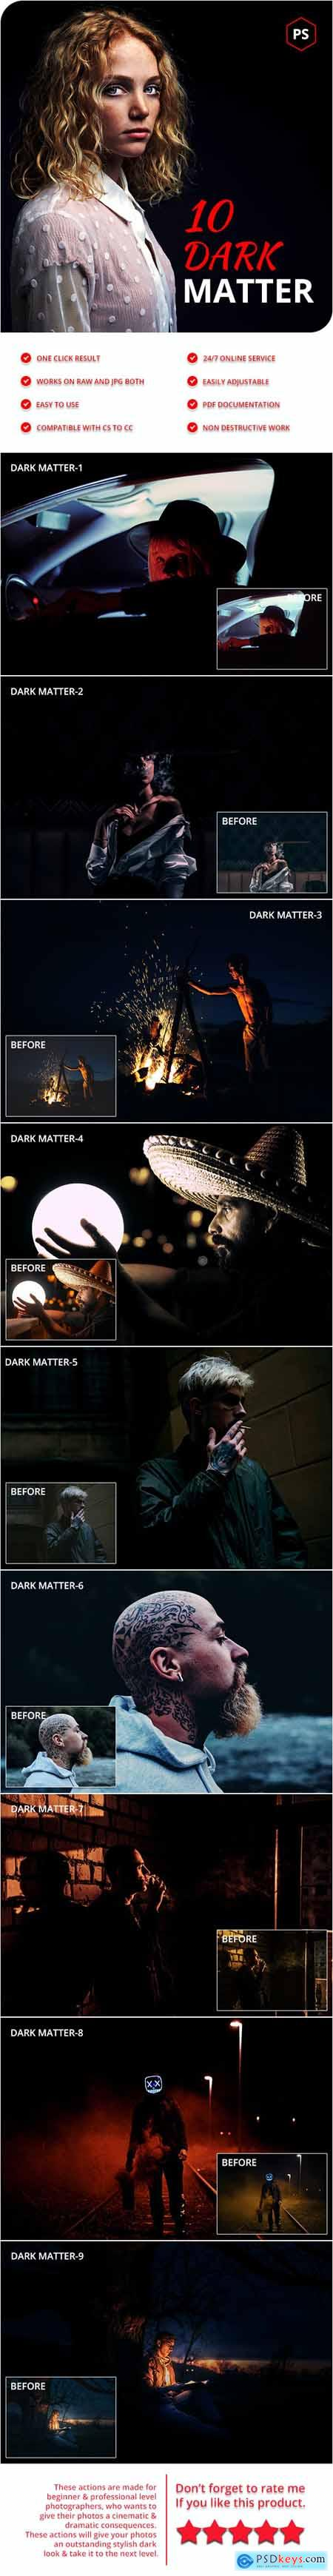 10 Dark Matter Photoshop Actions 28329765